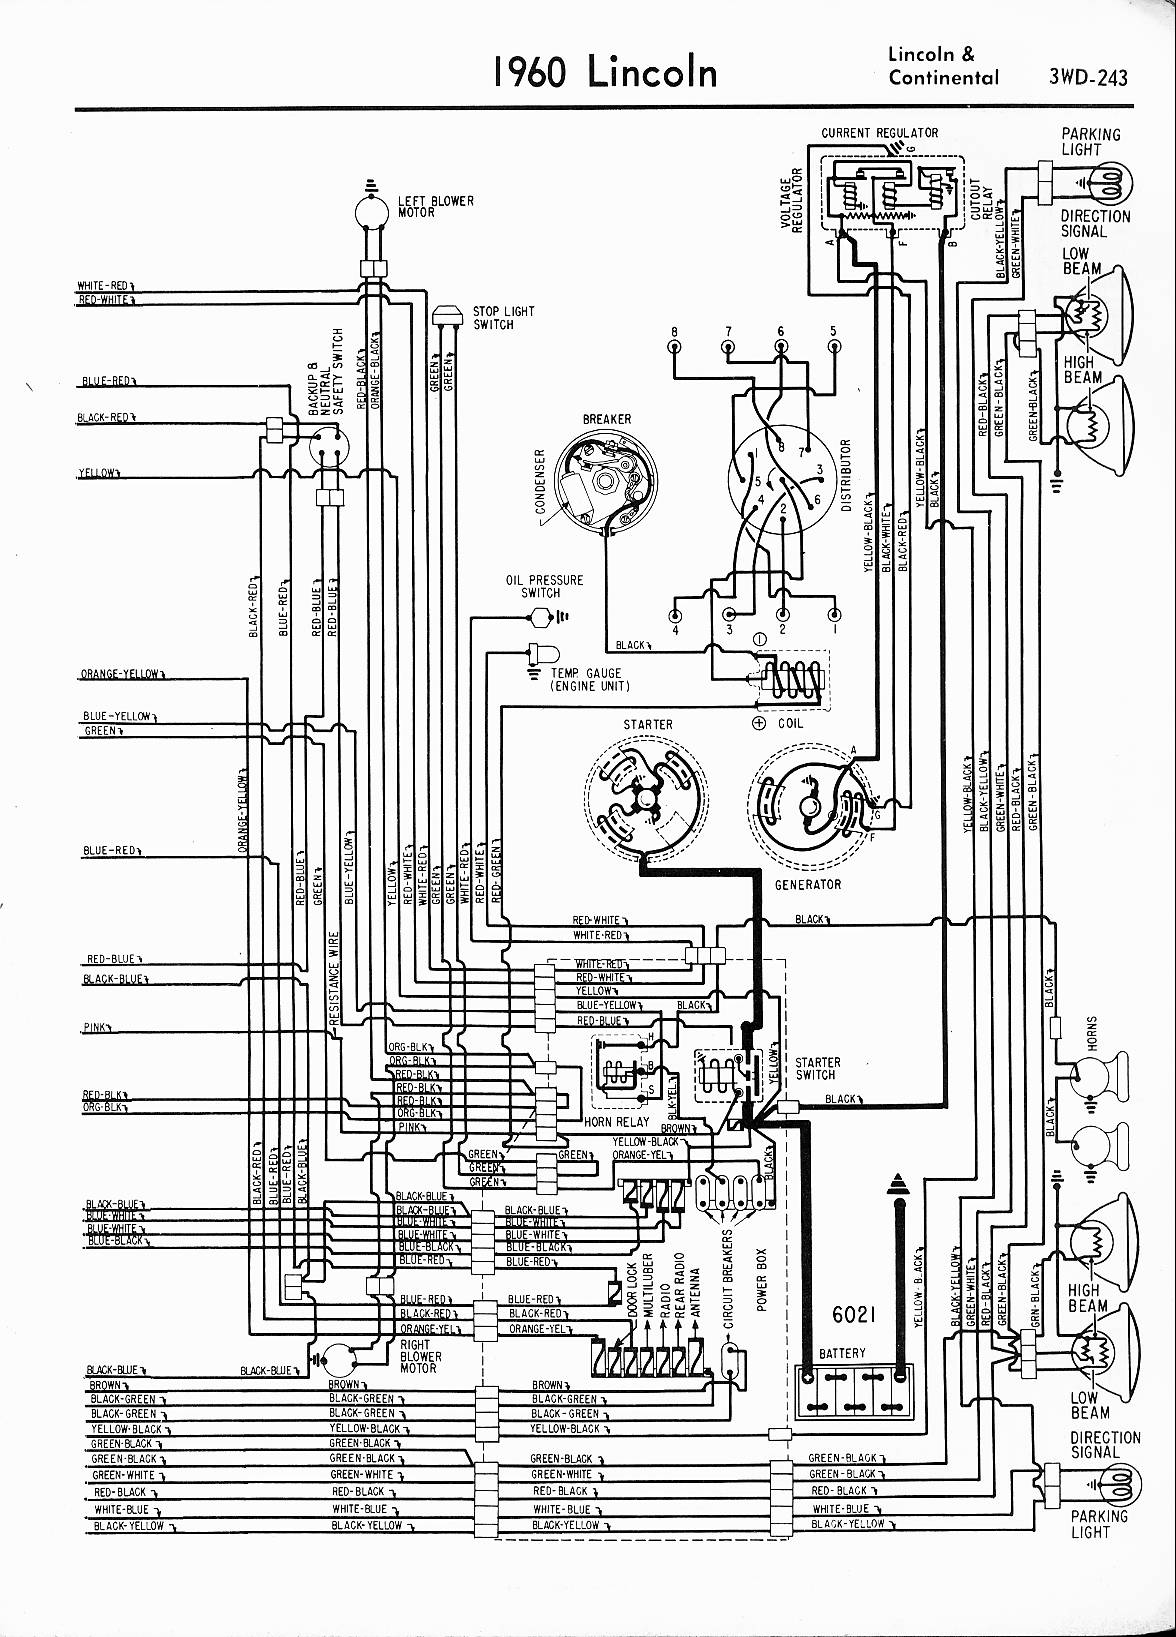 1960 lincoln wiring diagram schematics wiring diagrams u2022 rh  schoosretailstores com 1966 lincoln convertible top wiring